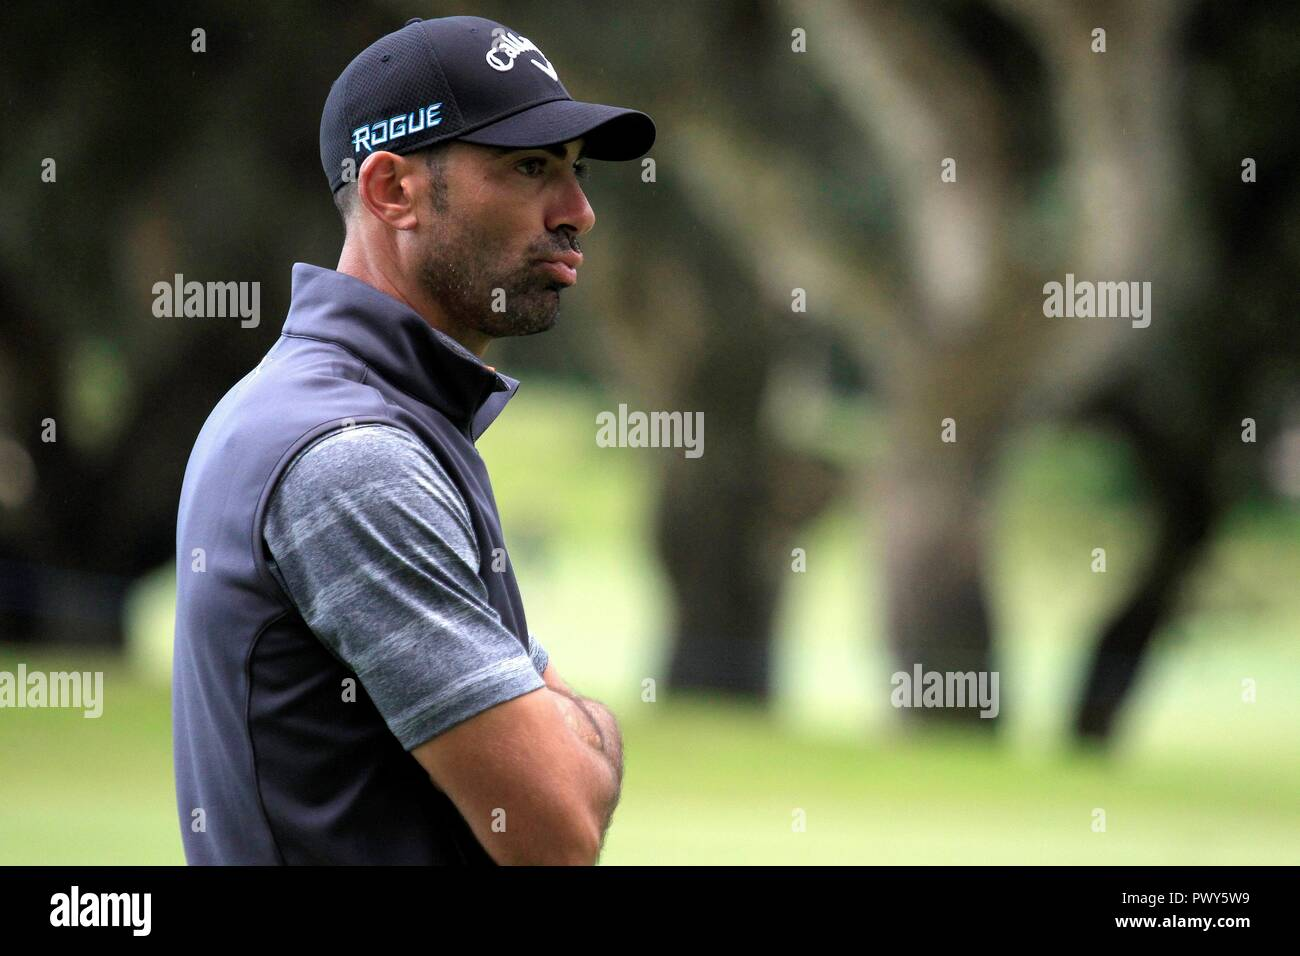 Spanish Alvaro Quiros at the hole 4 during the first round of the Golf 2018 Andalusia Valderrama Master, at the Royal Club Valderrama, in San Roque, Andalusia, Spain, 18 October 2018. EFE/A.Carrasco Ragel - Stock Image